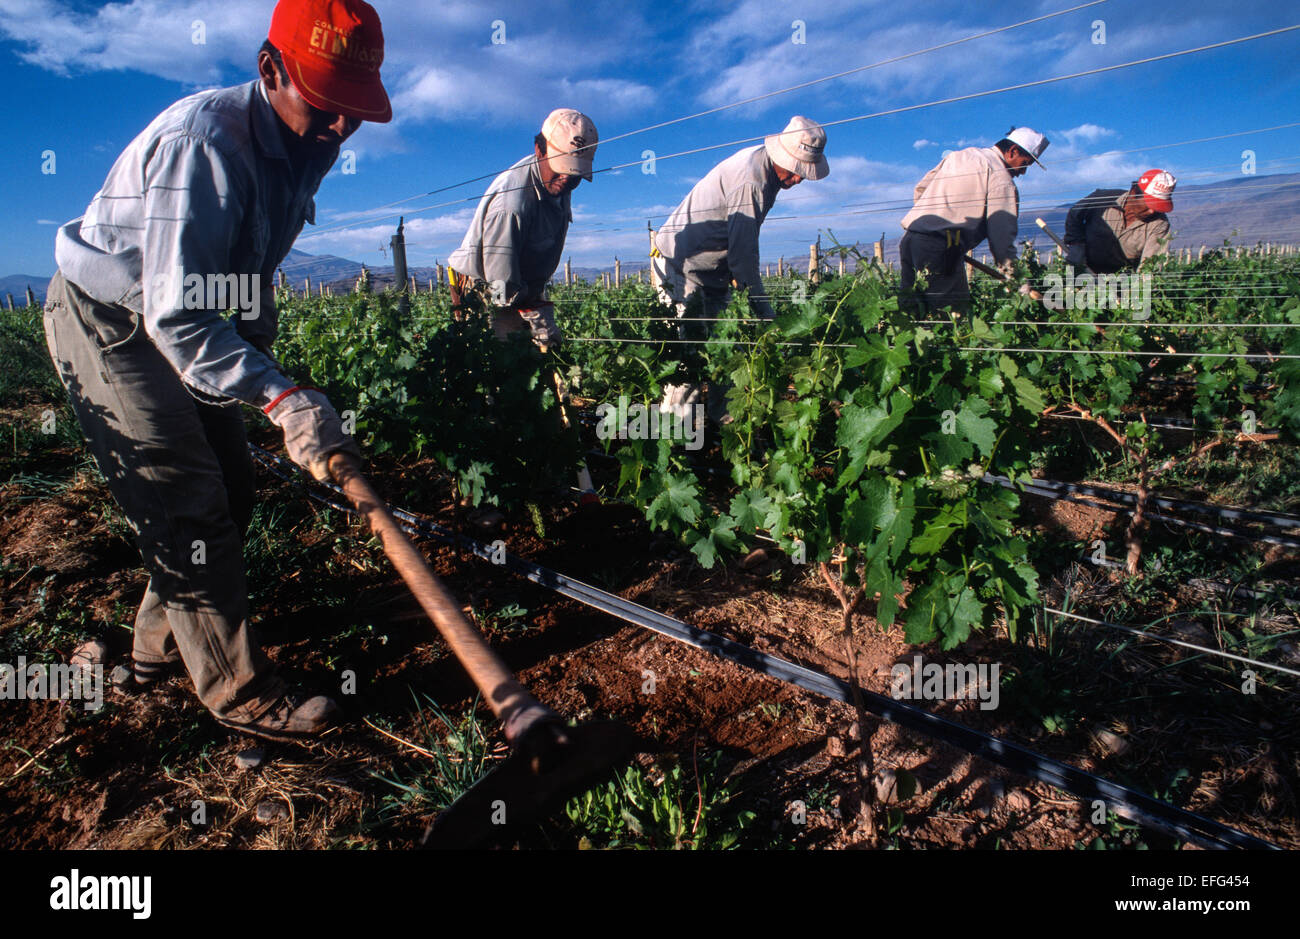 Men at work in a vineyard. Ranch Colome. Salta province, Argentina - Stock Image